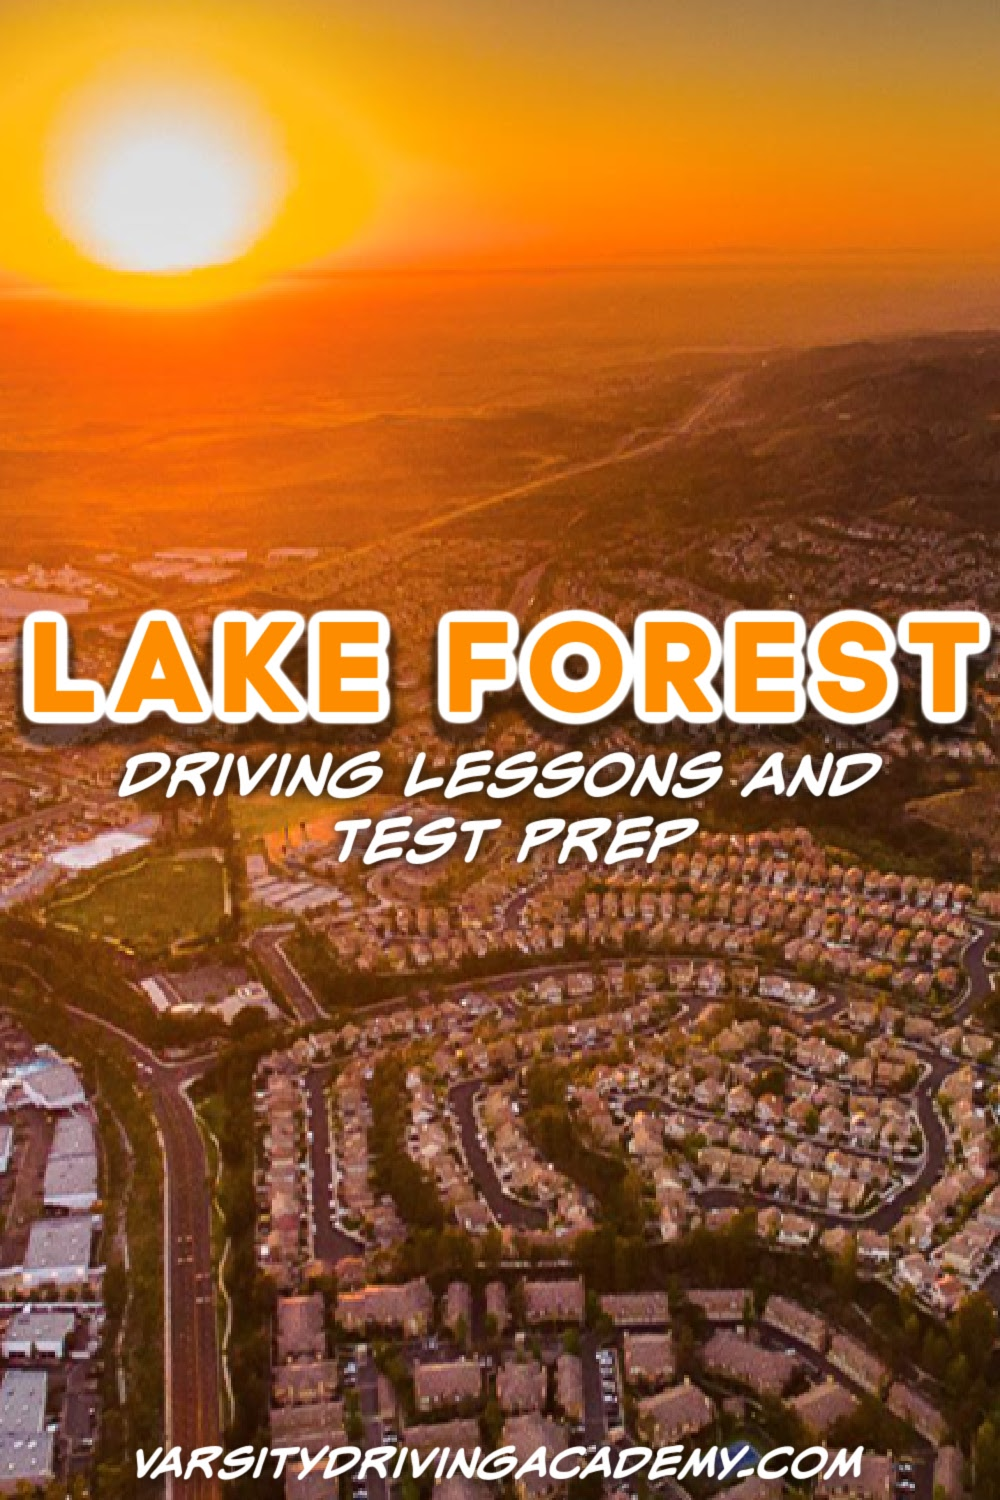 The best Lake Forest driving lessons will turn you into a safe driver that knows how to drive defensively and confidently wherever you may go.